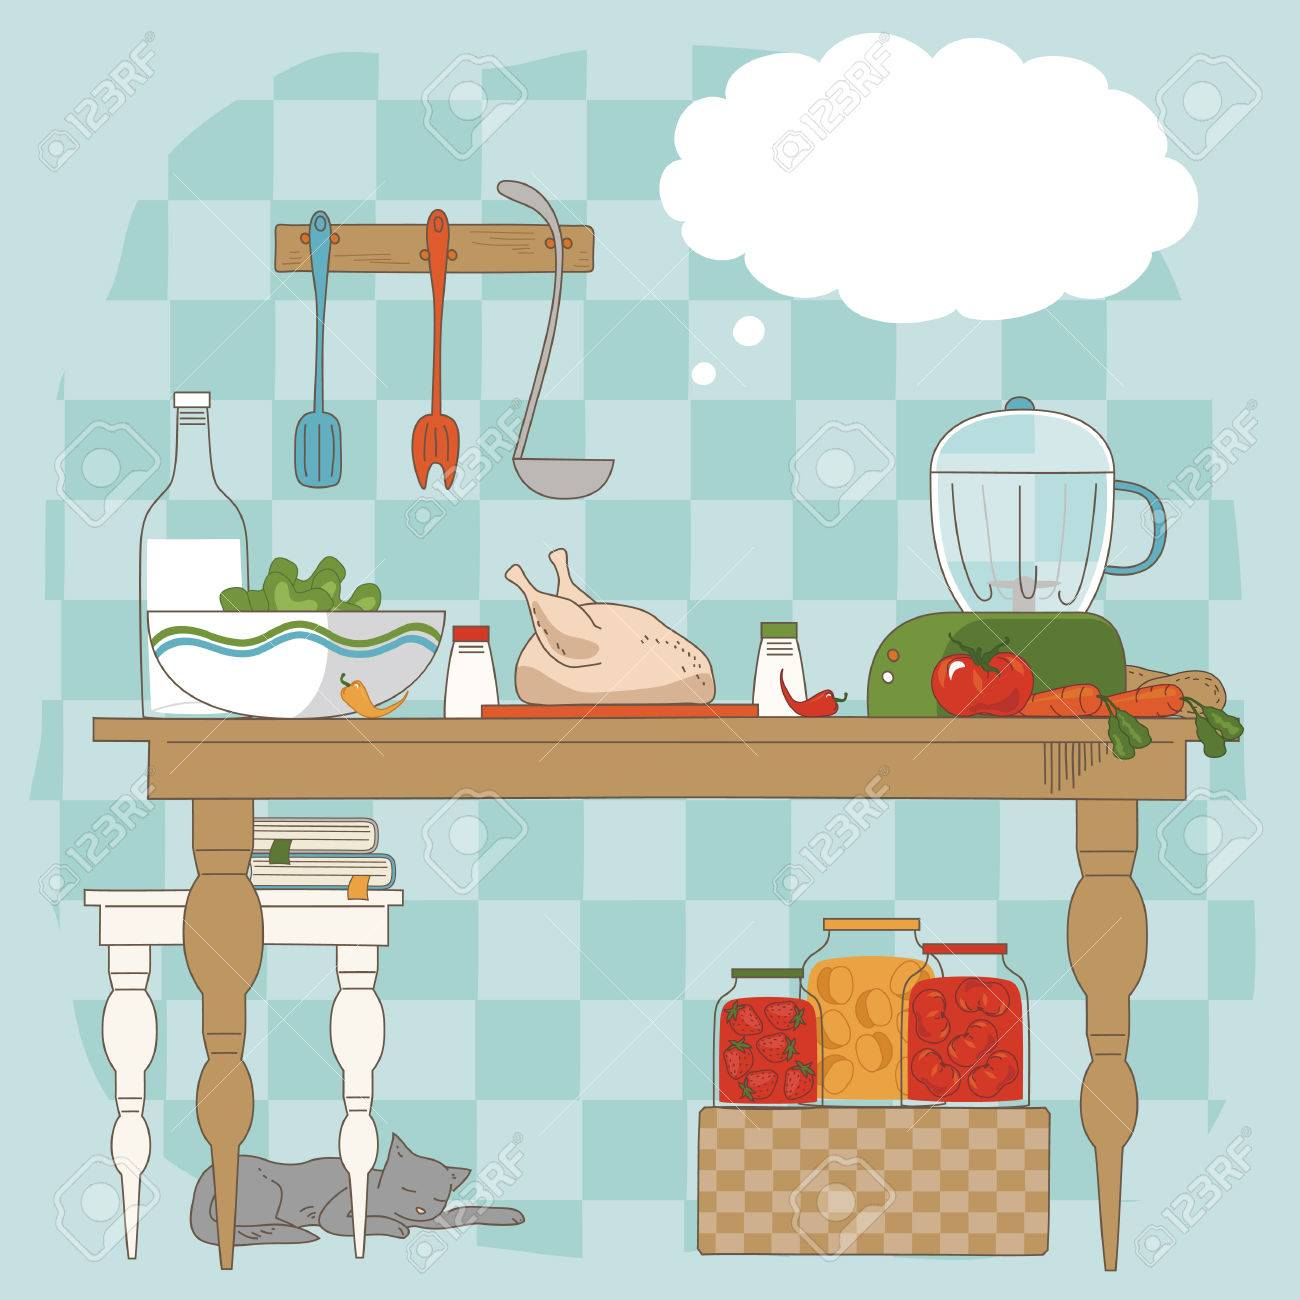 Kitchen table with utensils and ingredients for cooking Stock Vector - 6833156